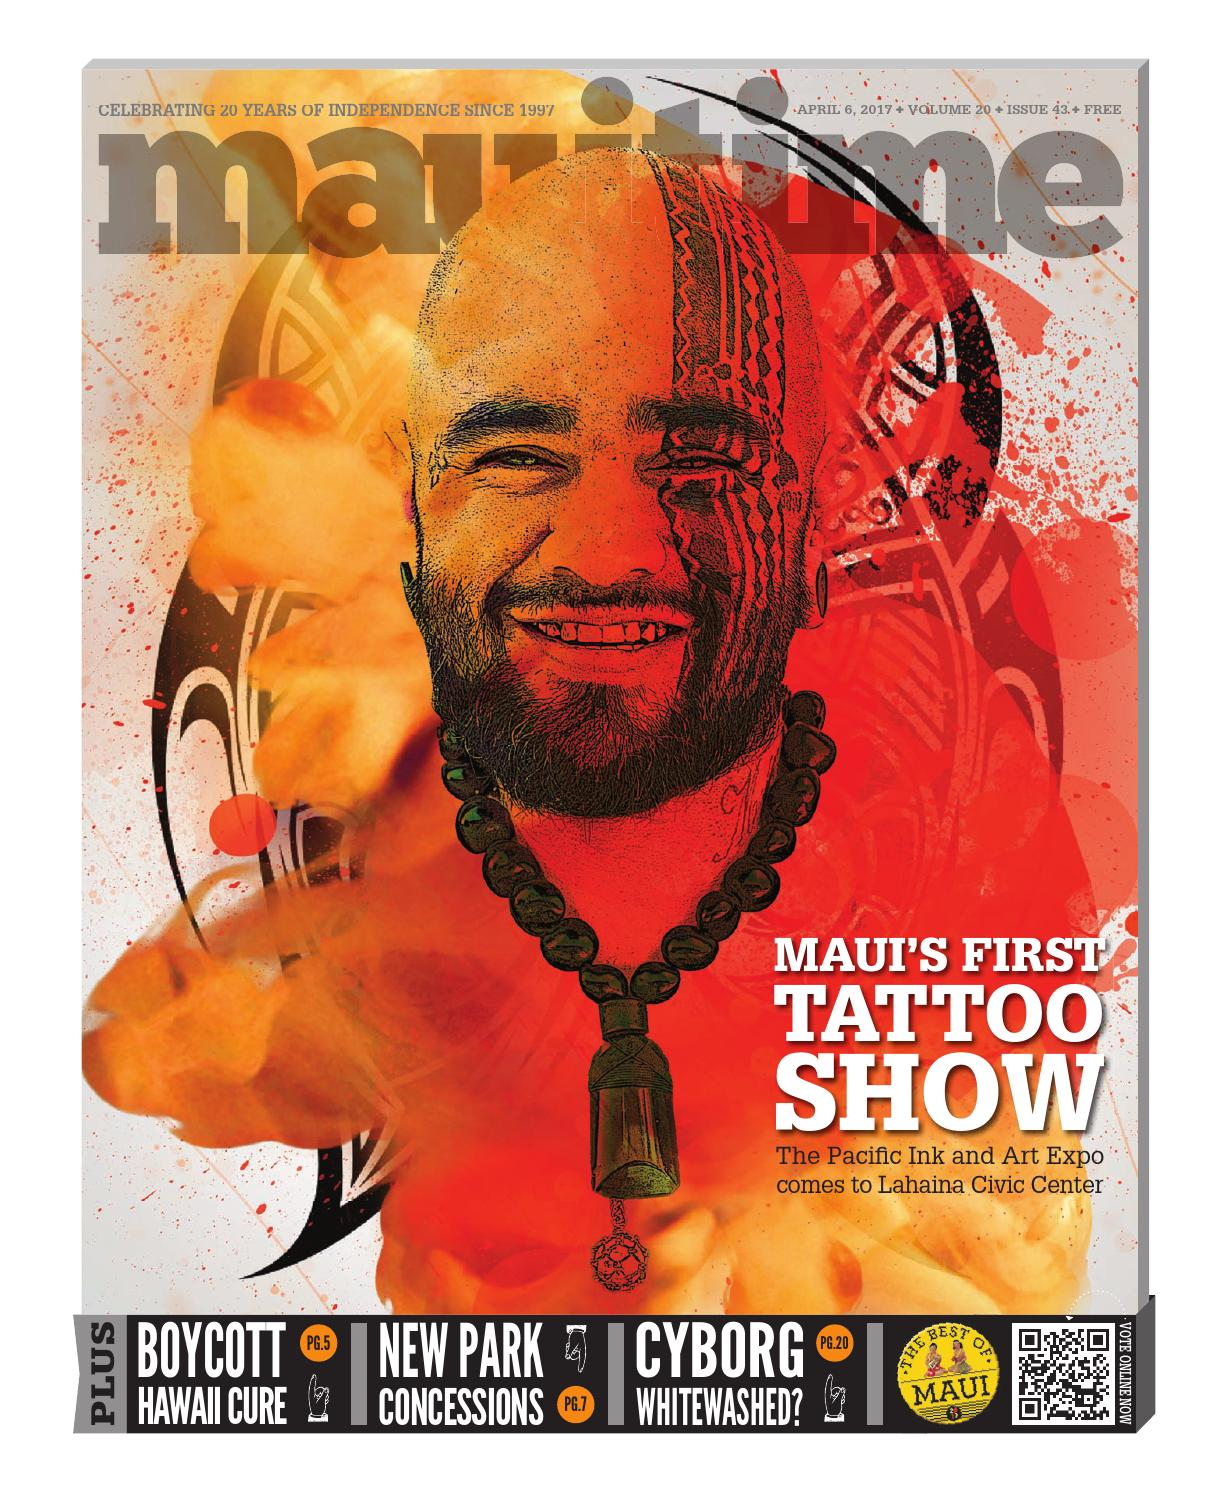 70172253c72 20.43 Maui's First Tattoo Convention Sampson Harp April 6, 2017, Volume 20,  Issue 43, MauiTime by Maui Time - issuu